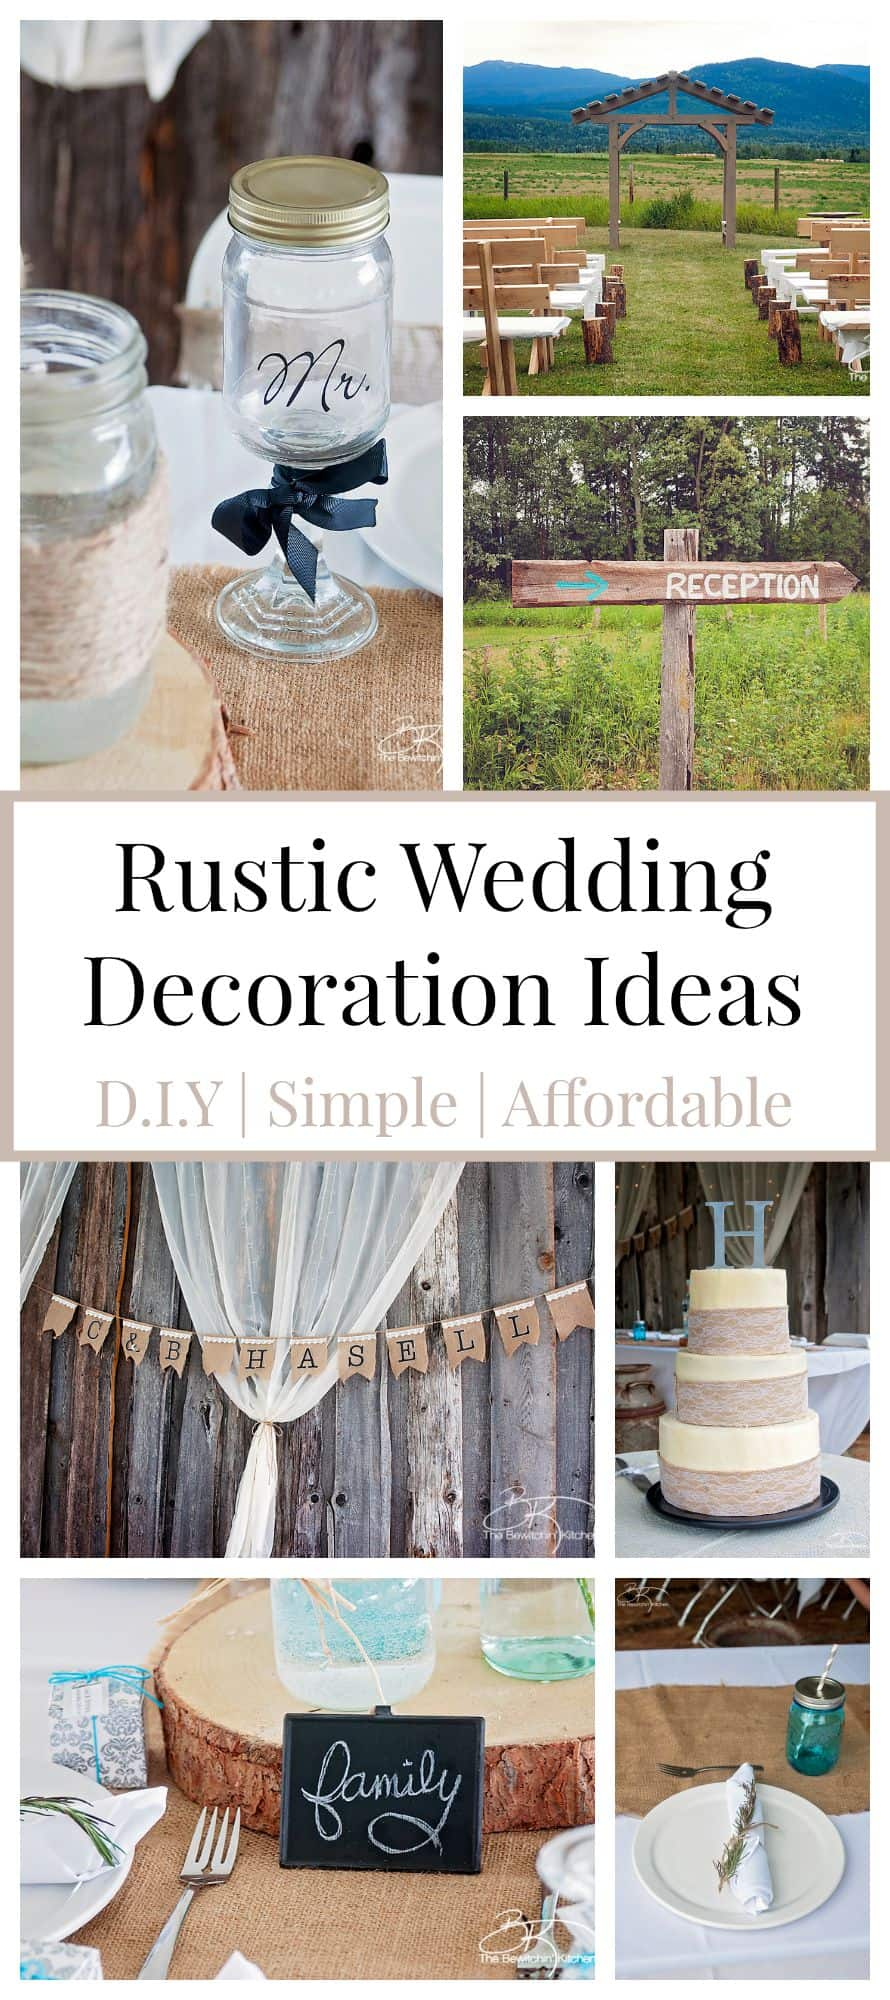 Rustic Wedding Ideas That Are DIY & Affordable